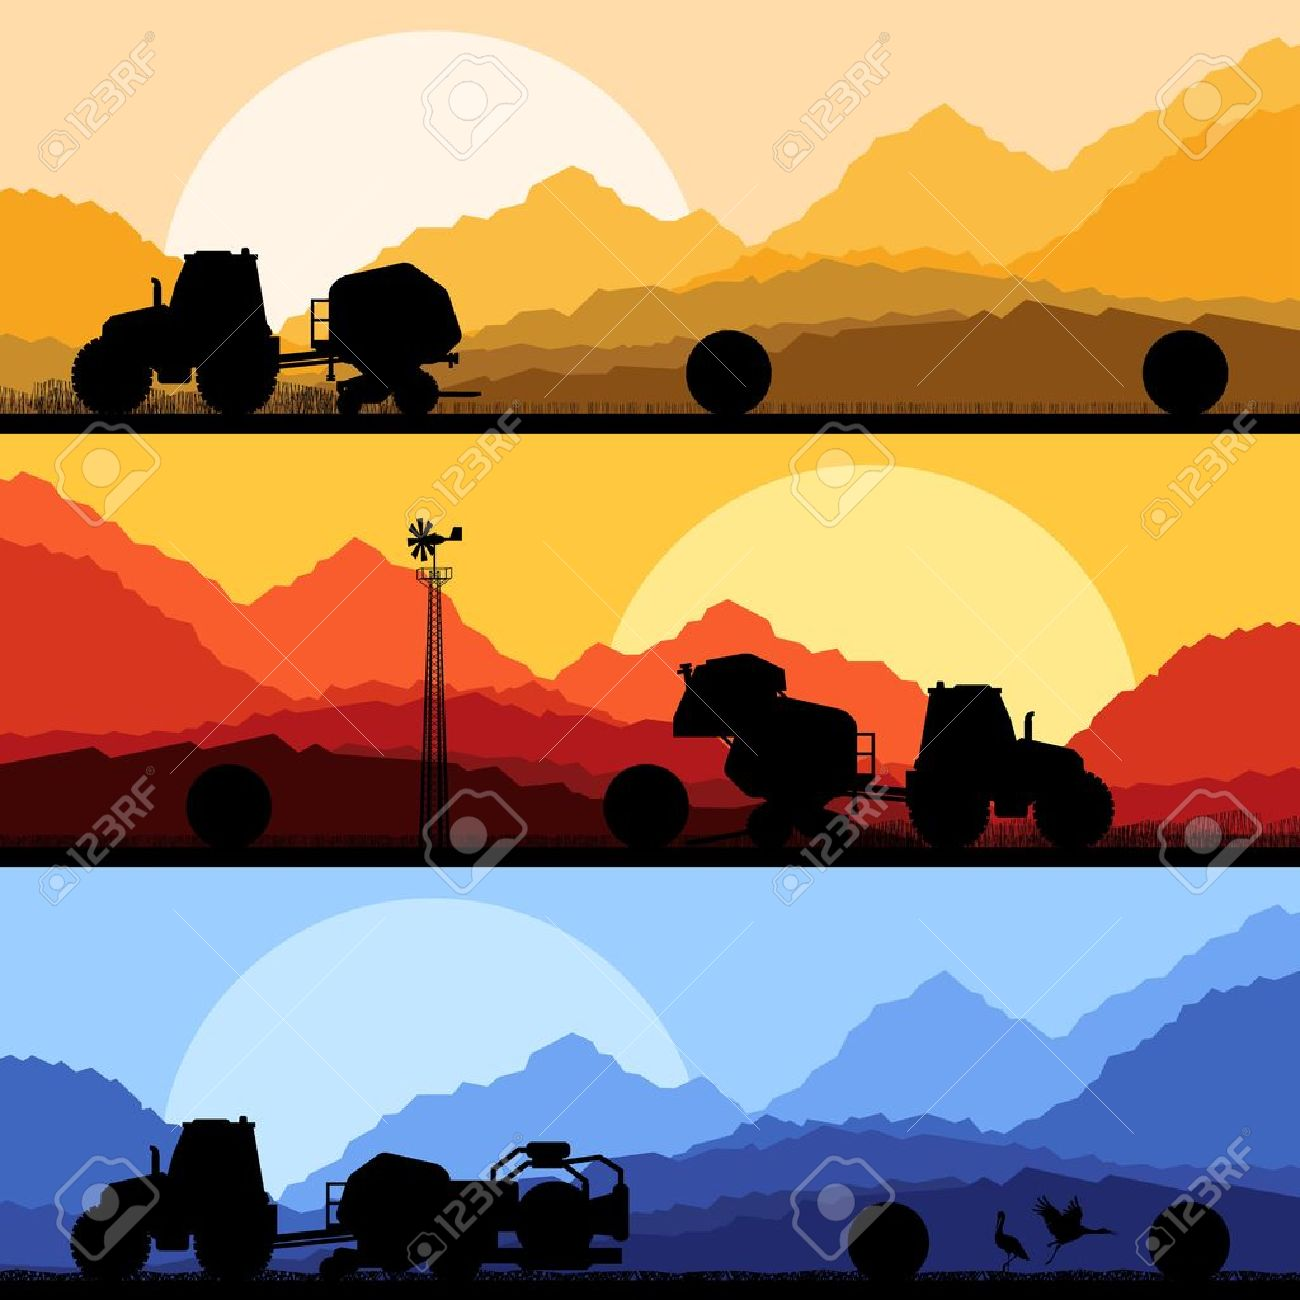 Agriculture tractors making hay bales in cultivated country fields landscape background illustration vector Stock Vector - 16289213